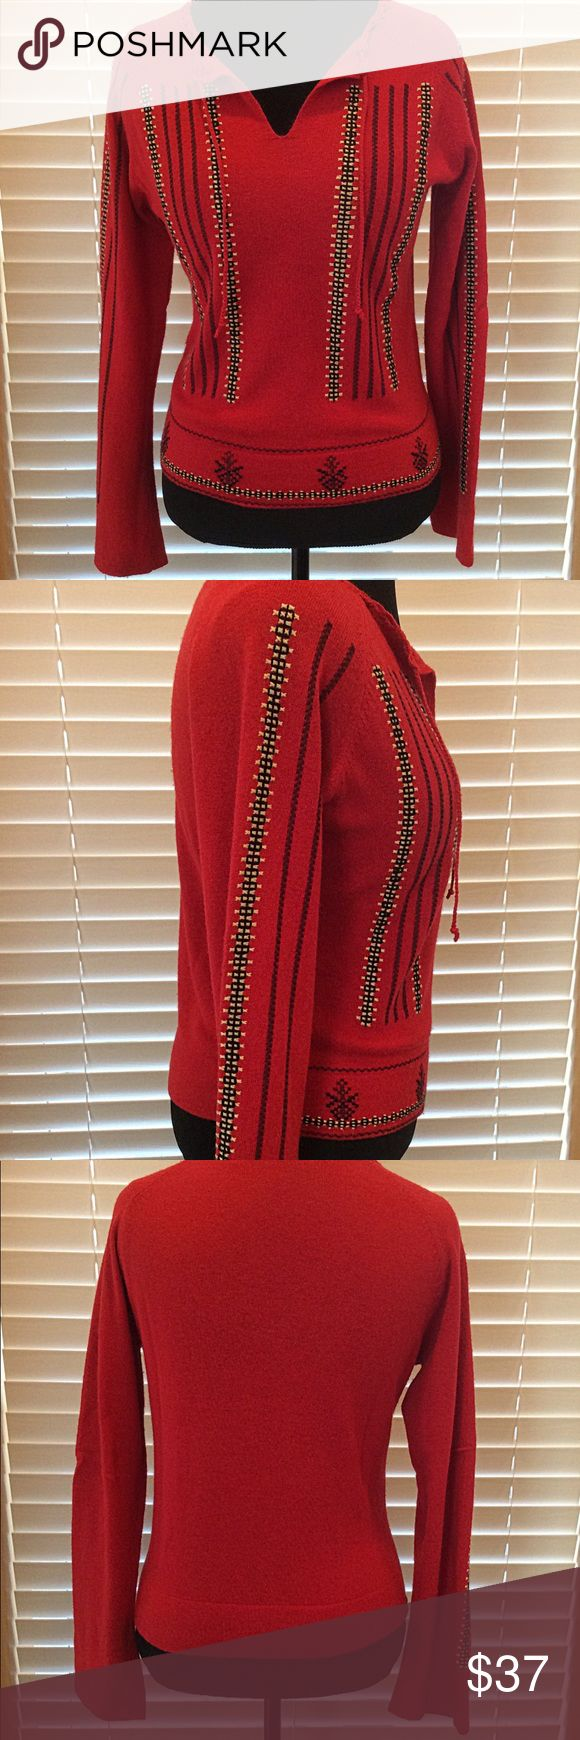 """SLEEPING ON SNOW RED SWEATER SIZE L/M GUC Cute light weight sweater with embroidered detail. 50% wool, 30% nylon, 6% angora, 3% cashmere. Measures 19.5 arm pit to arm pit and 21.5"""" shoulder to hem.  Size is large but it runs smaller. Anthropologie Sweaters"""